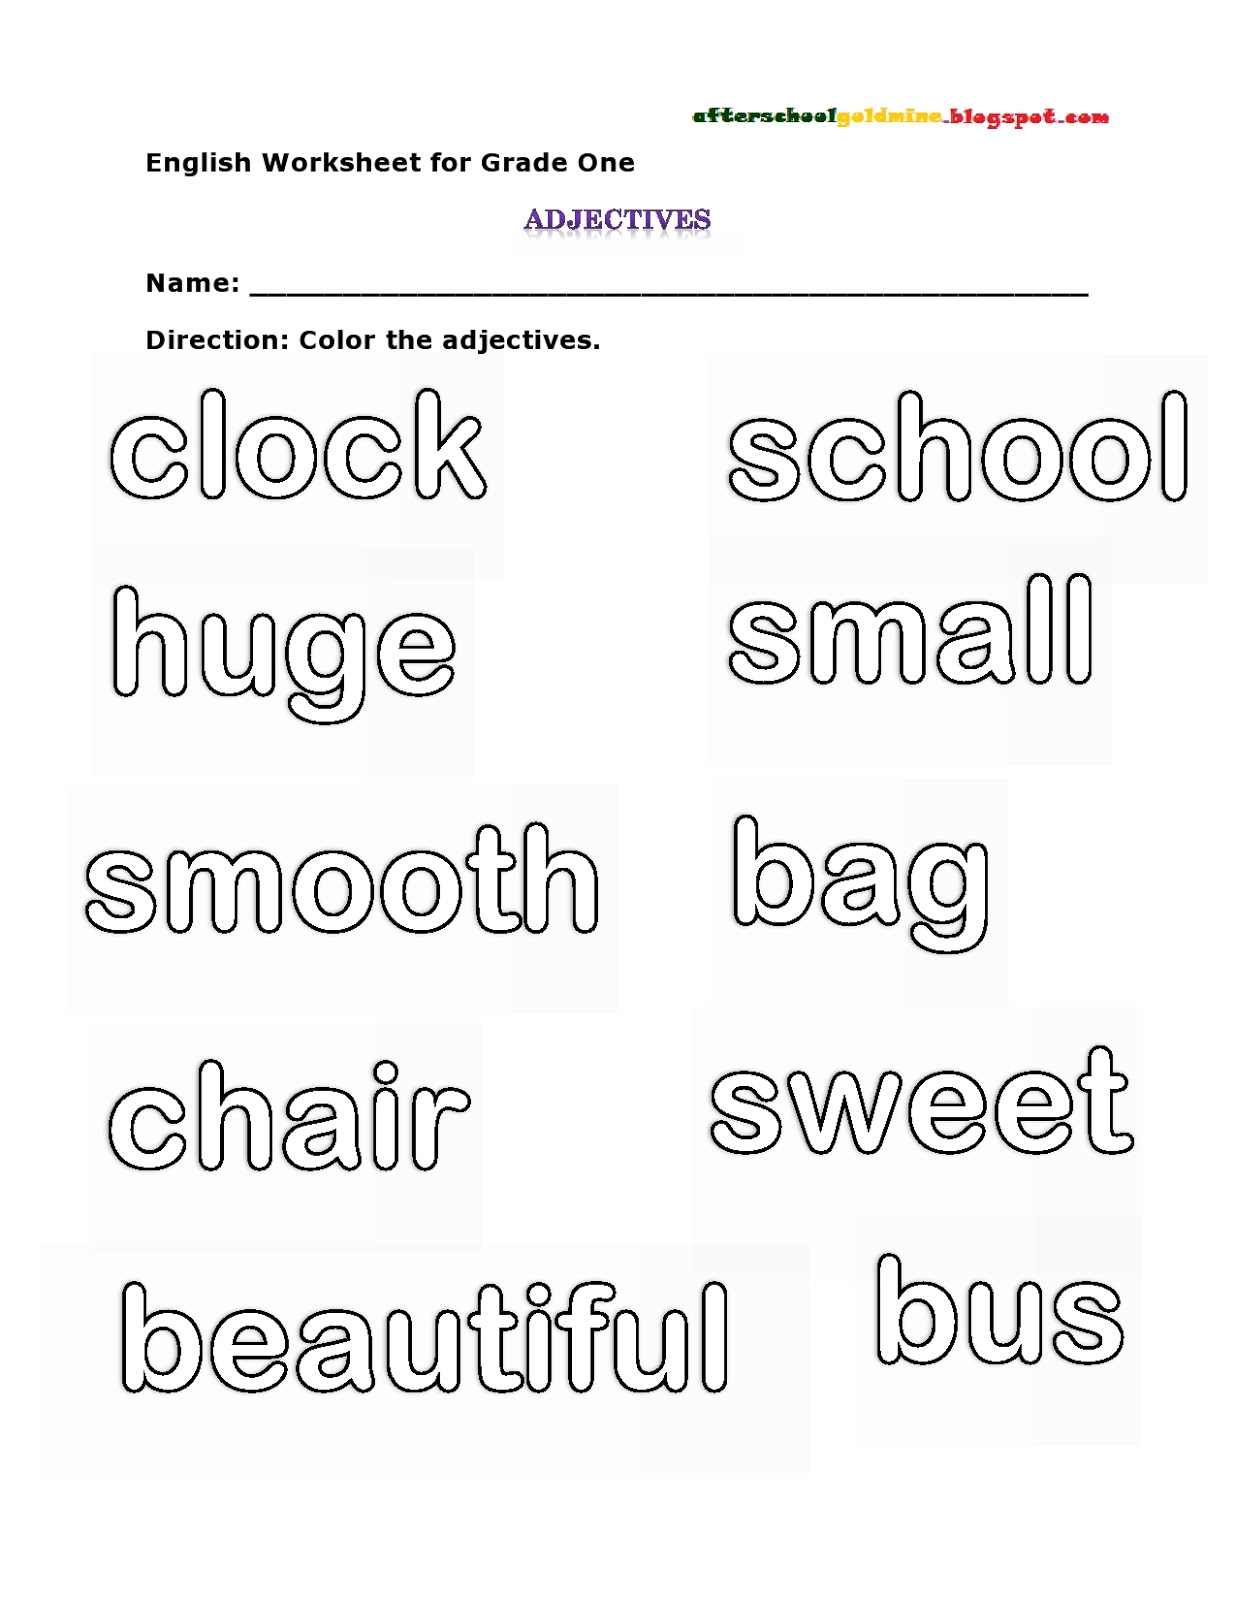 Worksheet Adjectives Grade 1 arab unity school grade 1 c blog english adjectives worksheet worksheet